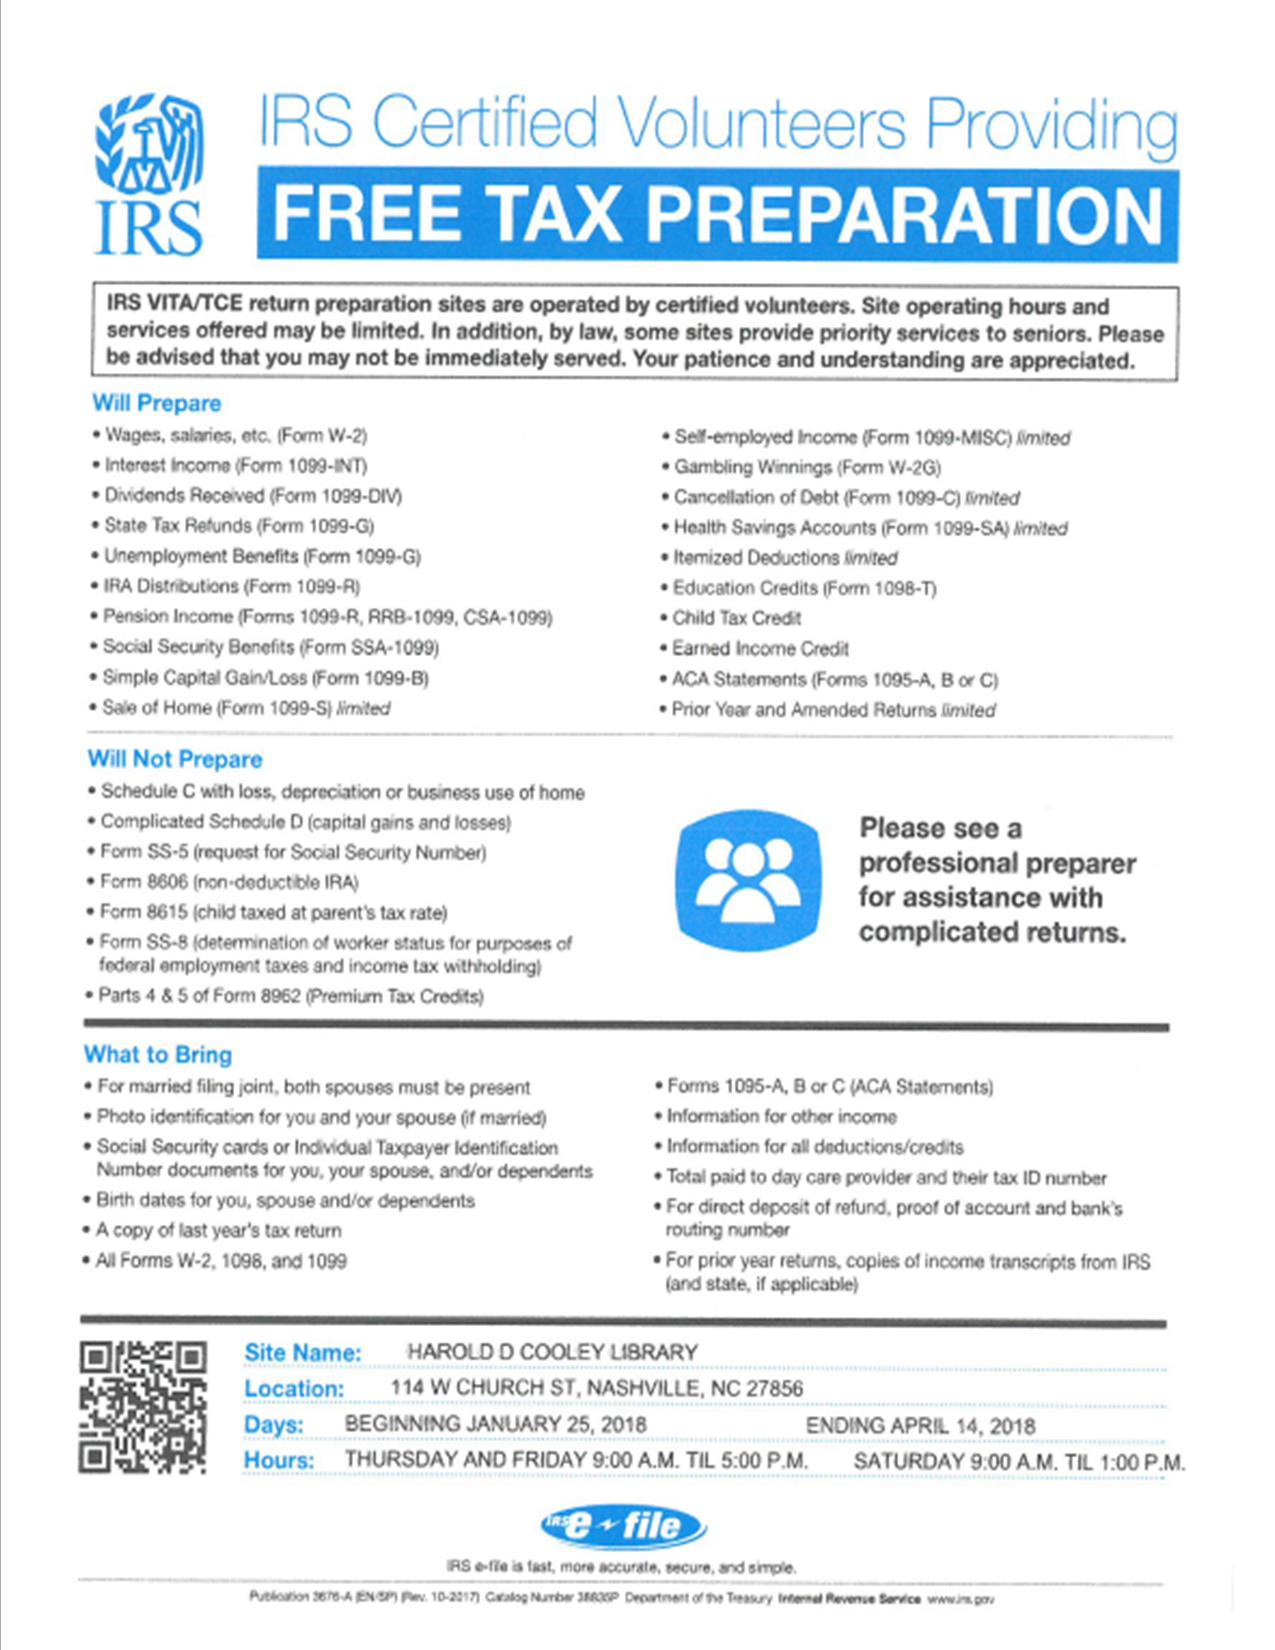 Last Day For Vita Tax Prep Master Events Calendar Nashville Nc